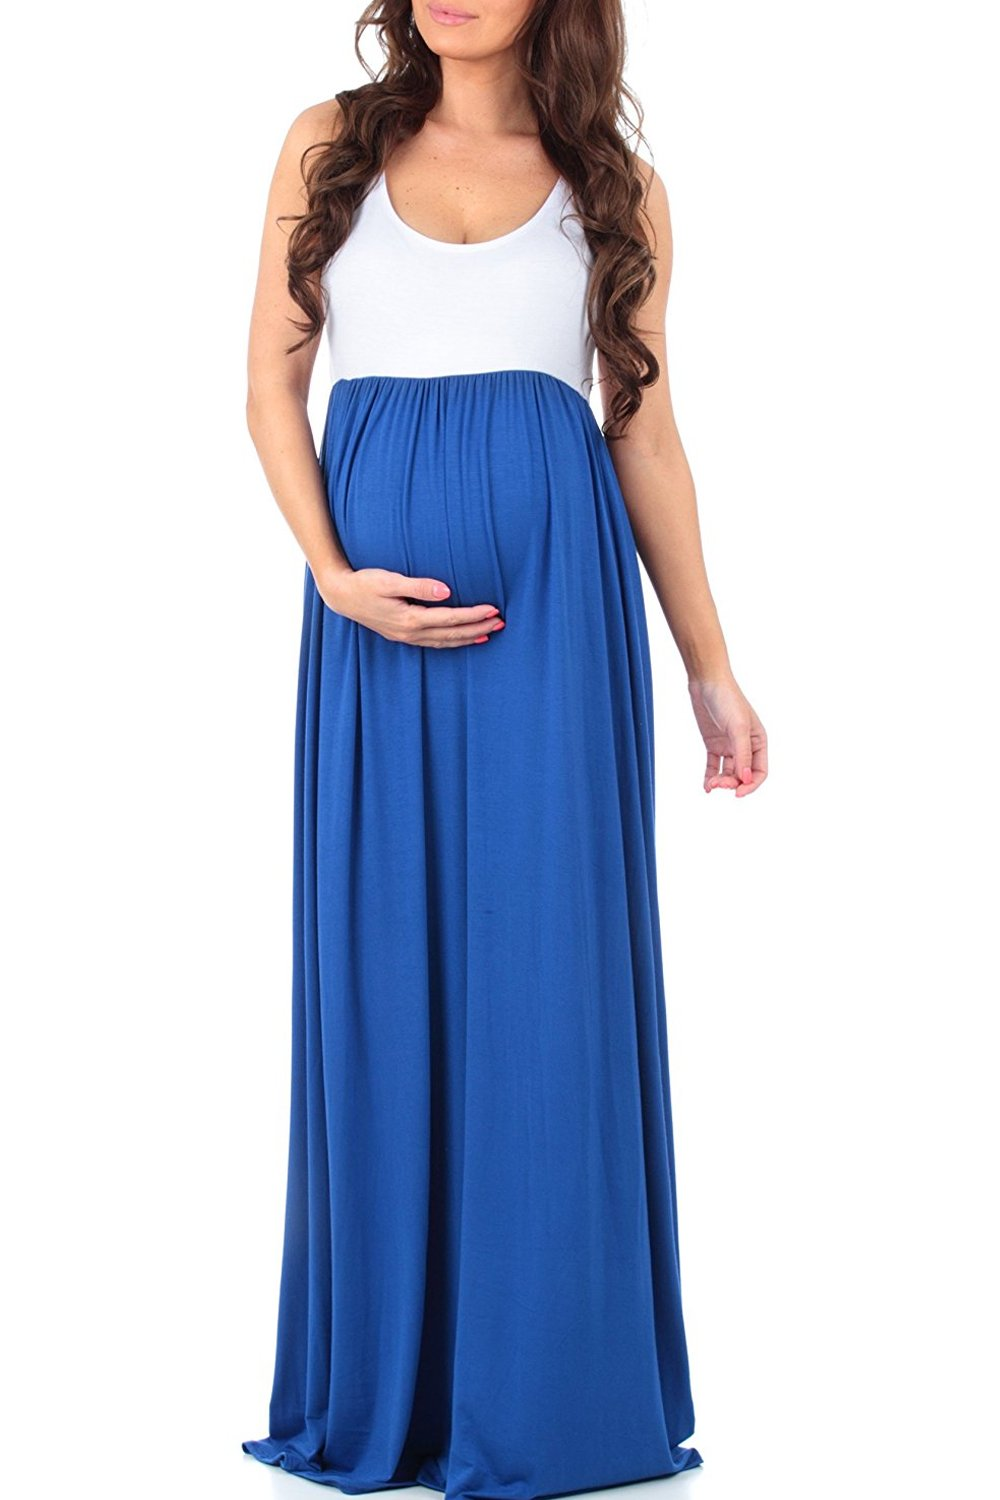 MANNEW Maternity Dress Sleeveless Maxi Dress Tank Stitching Color Block Stretch Causual Wrap Dress Ruched Gowns Blue X-Large